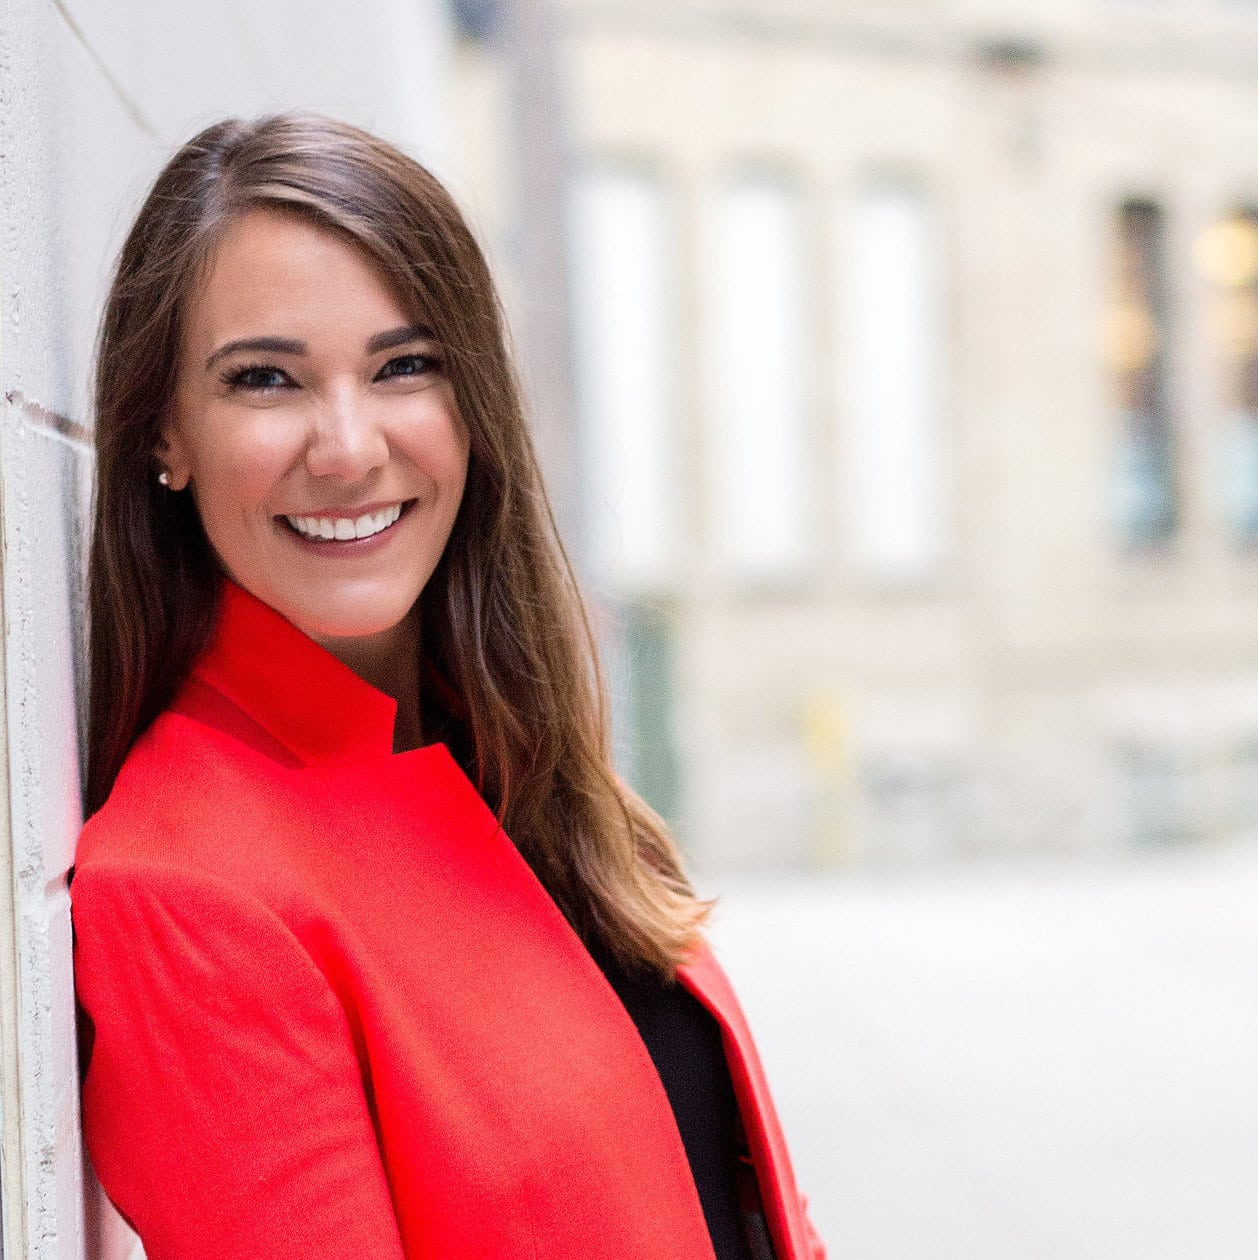 Abby Walker is a fun, motivated and creative business woman.